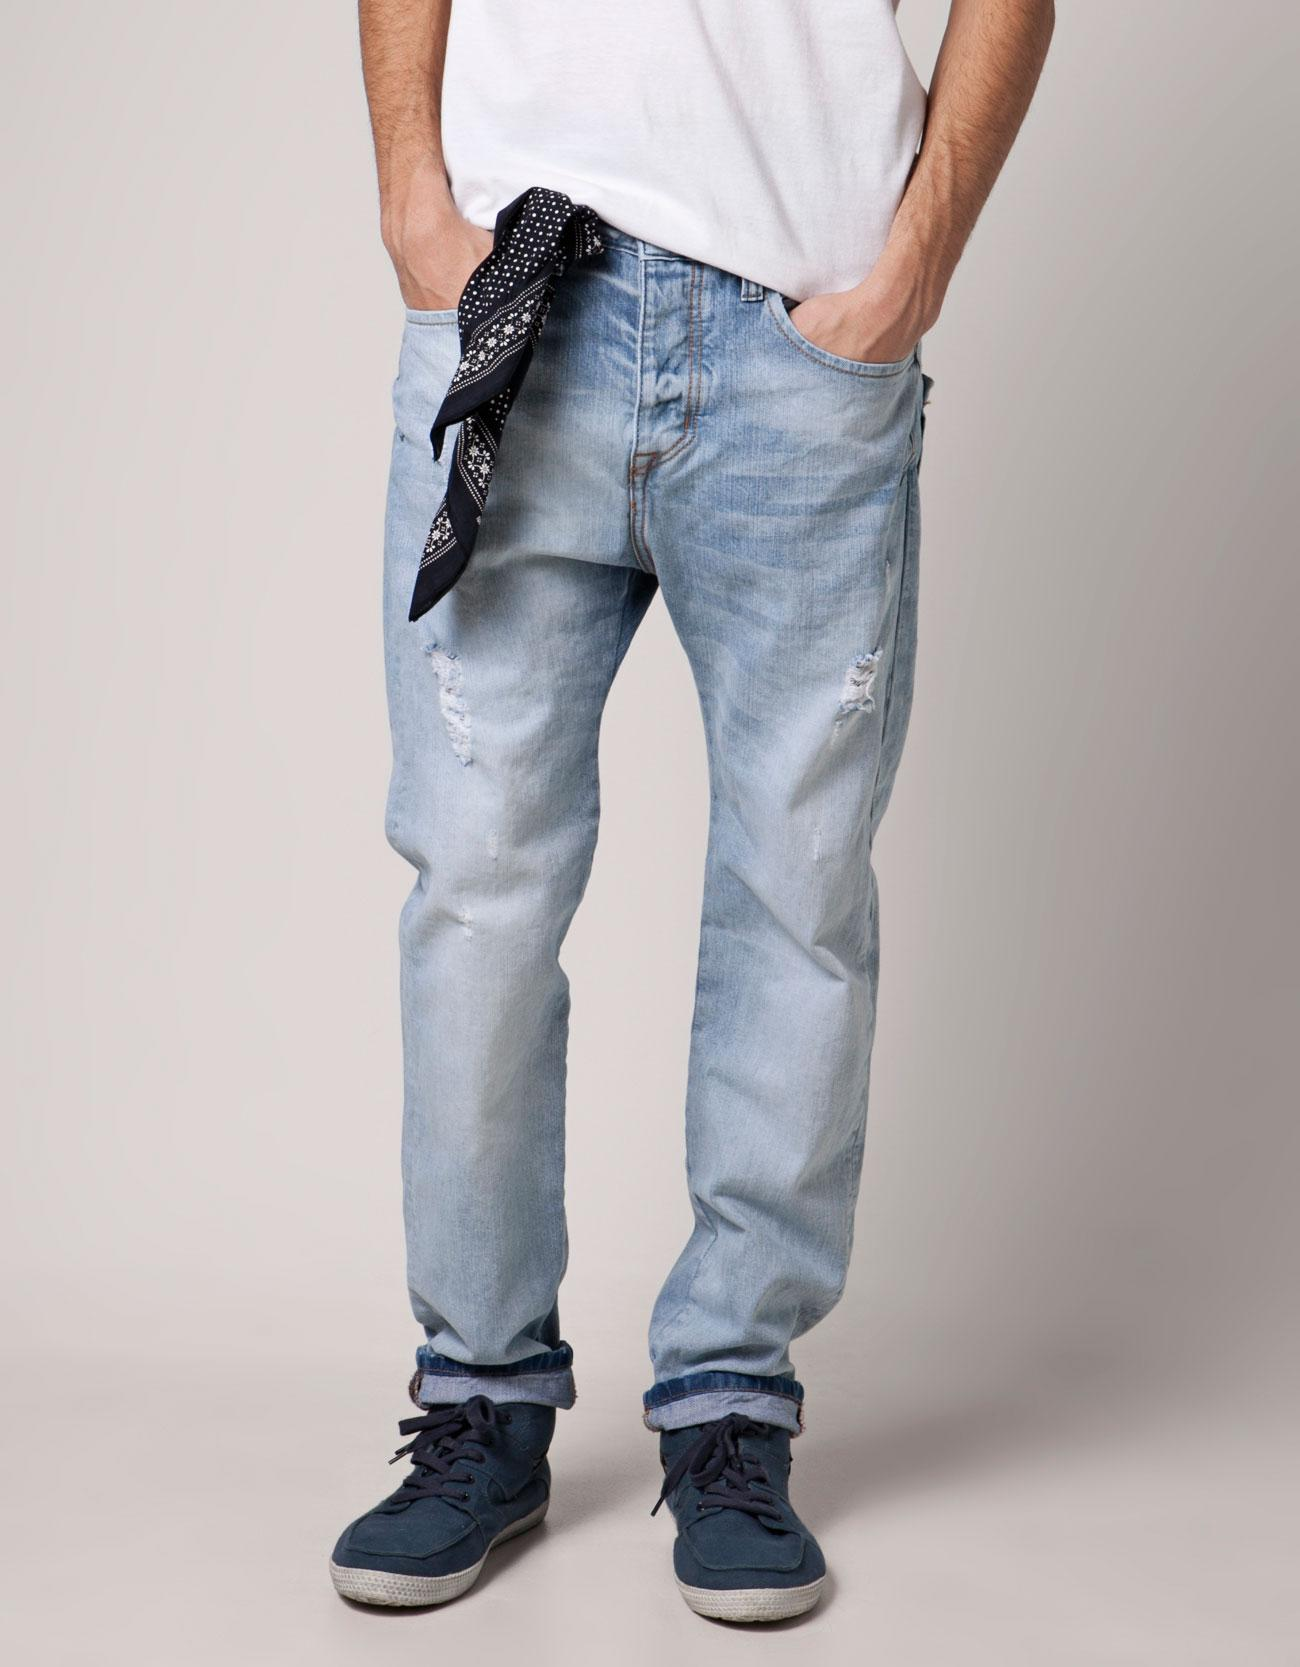 Bershka Russian Federation - Jeans with bandanna